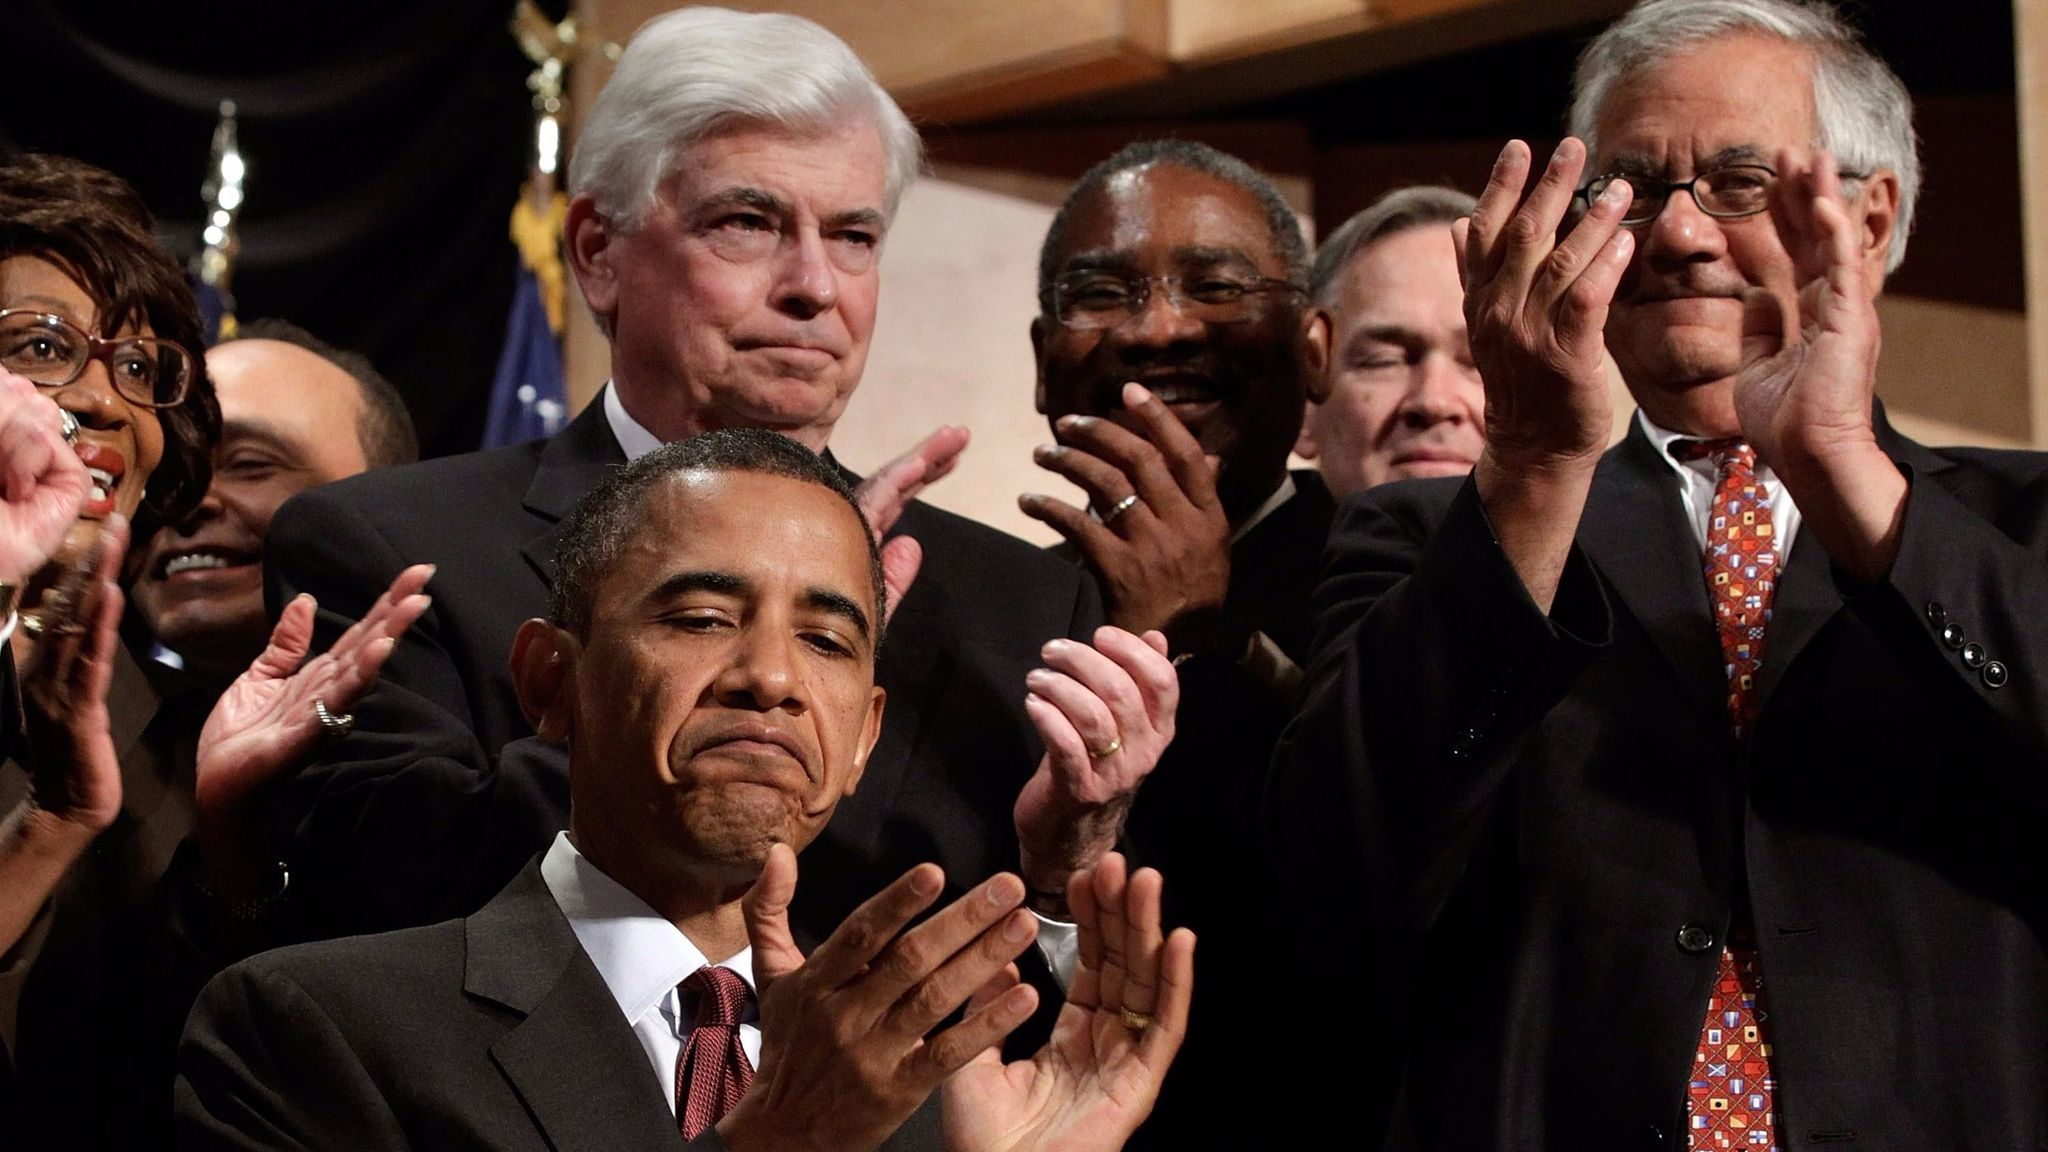 President Barack Obama applauds after signing the the Dodd-Frank financial reform bill into law in 2010, joined by Senate Banking Committee Chairman Christopher Dodd (D-Conn.), center, and House Financial Services Committee Chairman Barney Frank (D-Mass.), right.